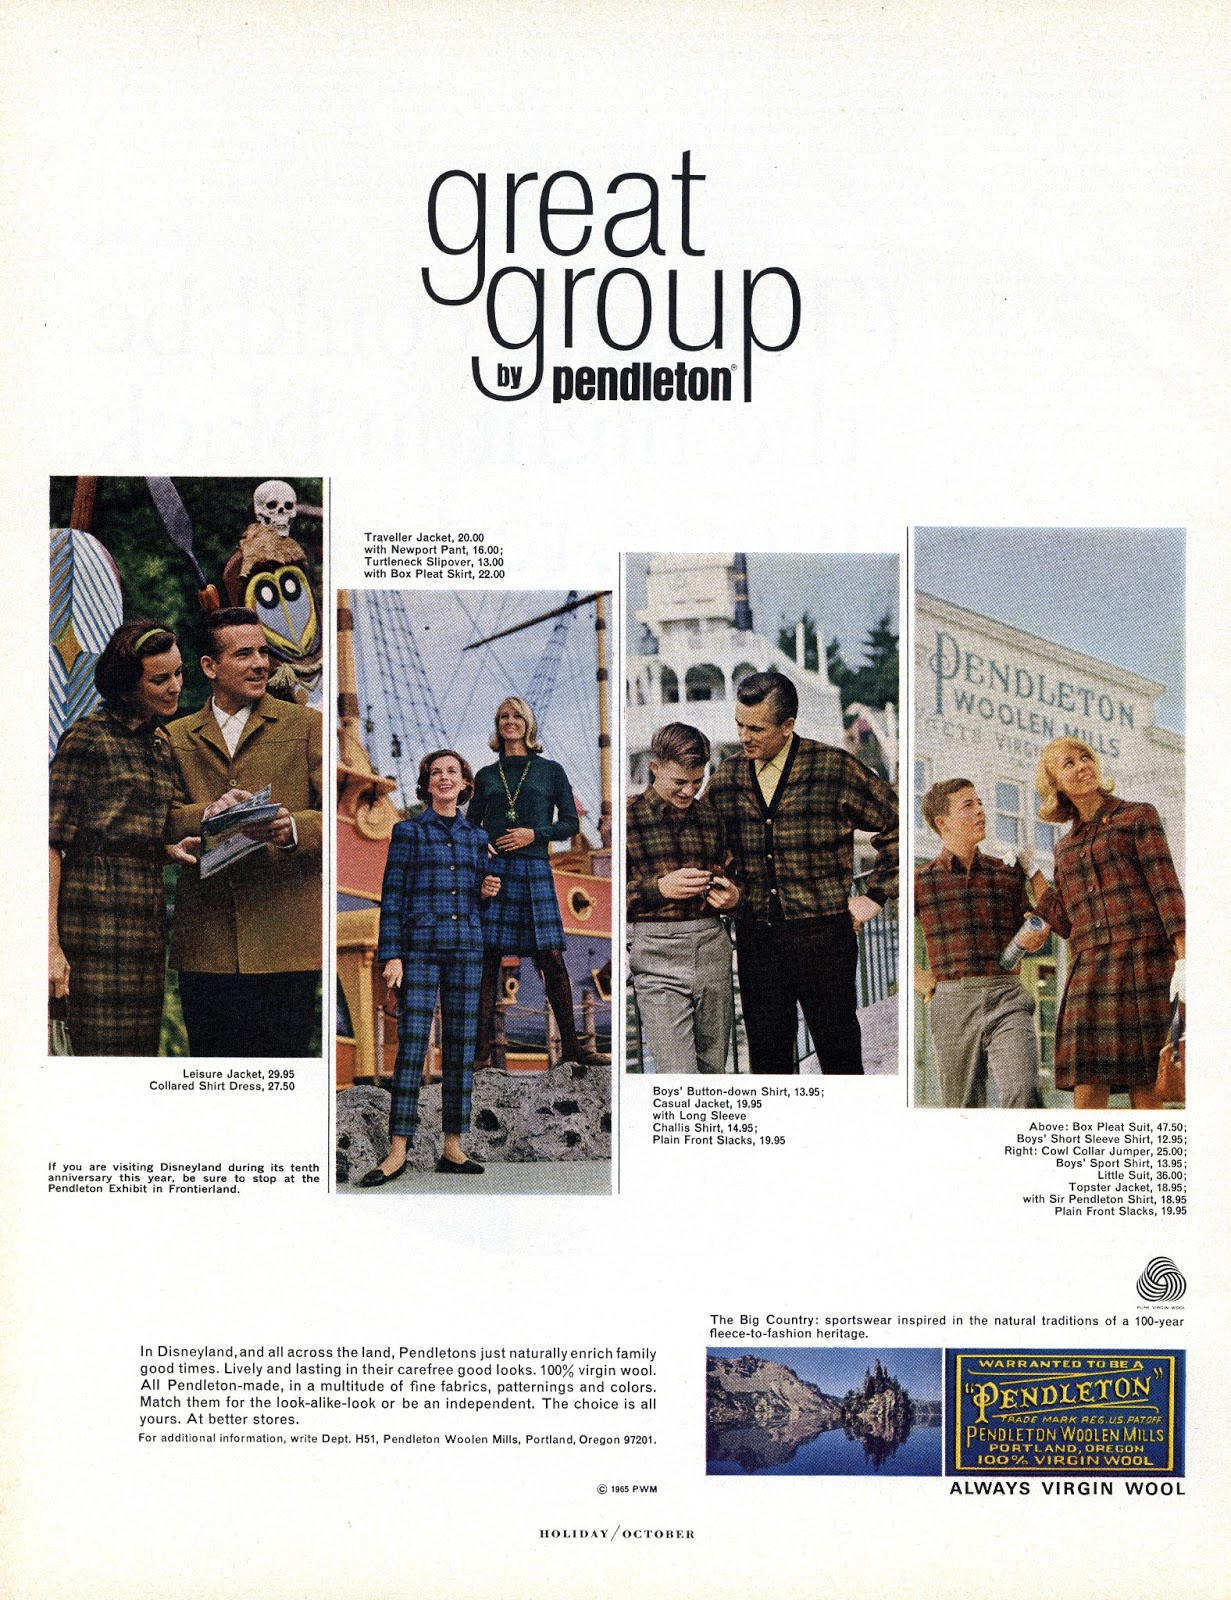 A 1965 Pendleton ad featruring various family members dressed alike in Pendleton plaids.